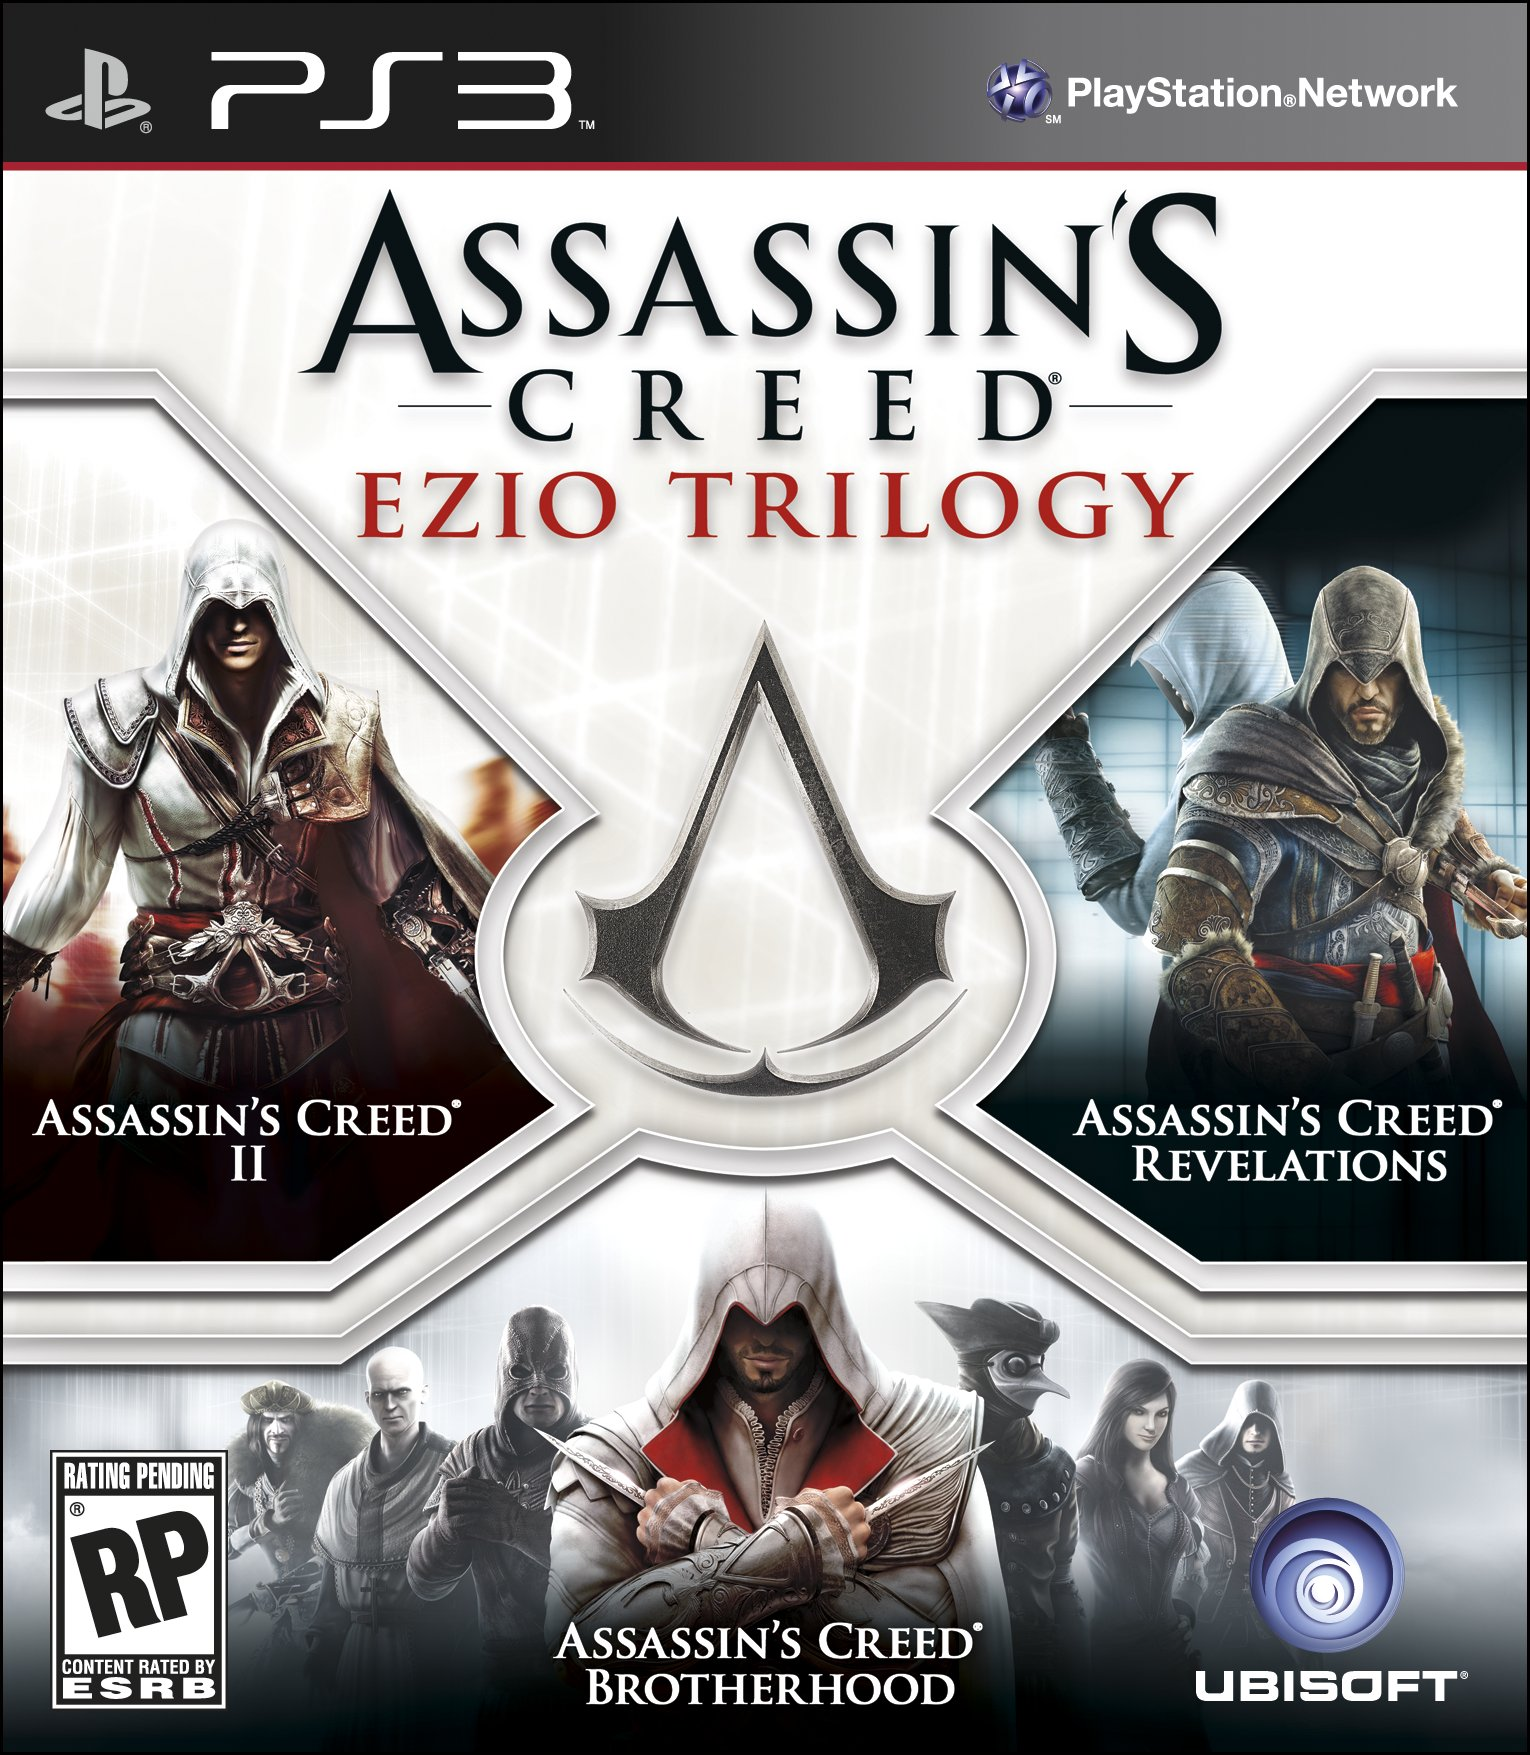 Assassins creed 3 free download ocean of games.